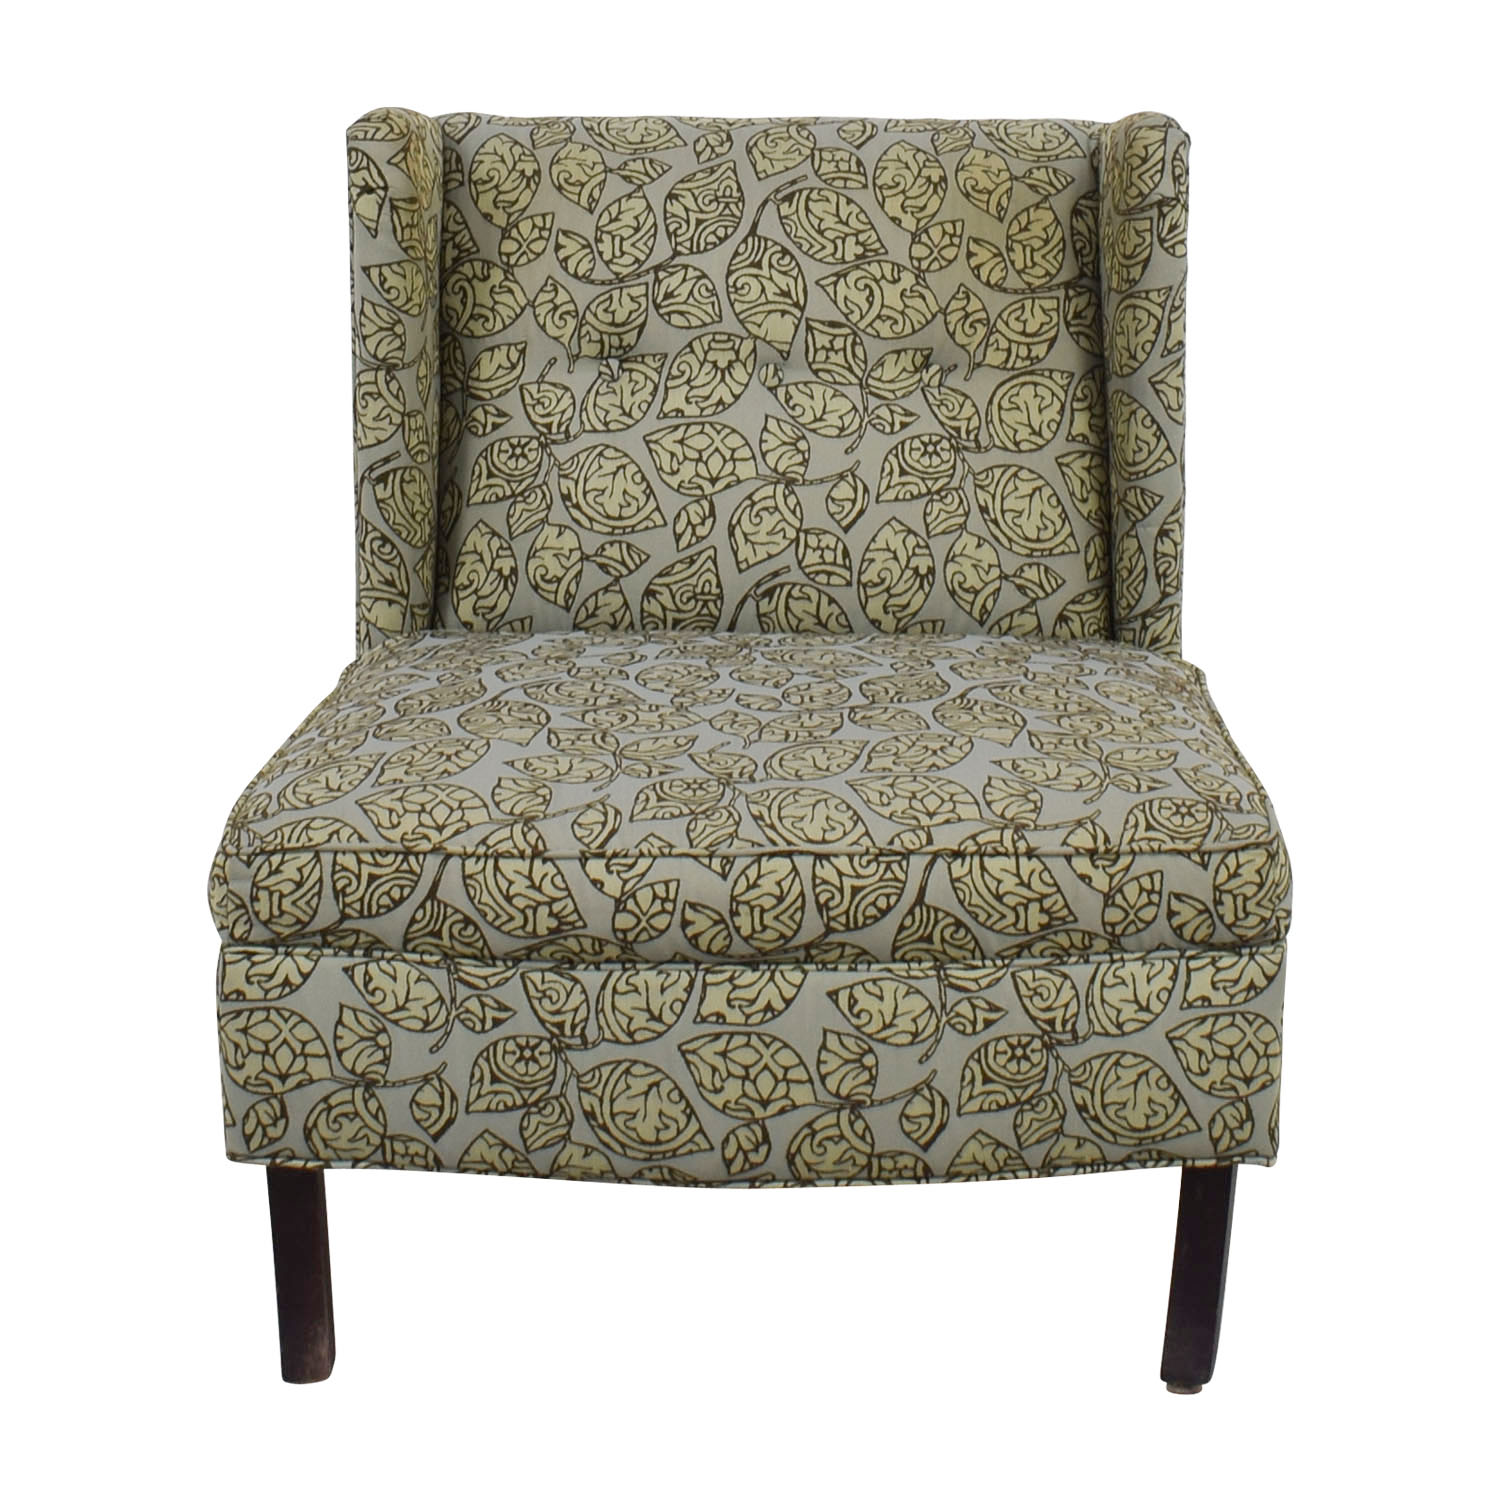 Restoration Hardware Restoration Hardware Green and Grey Lounge Accent Chair GREEN/GREY